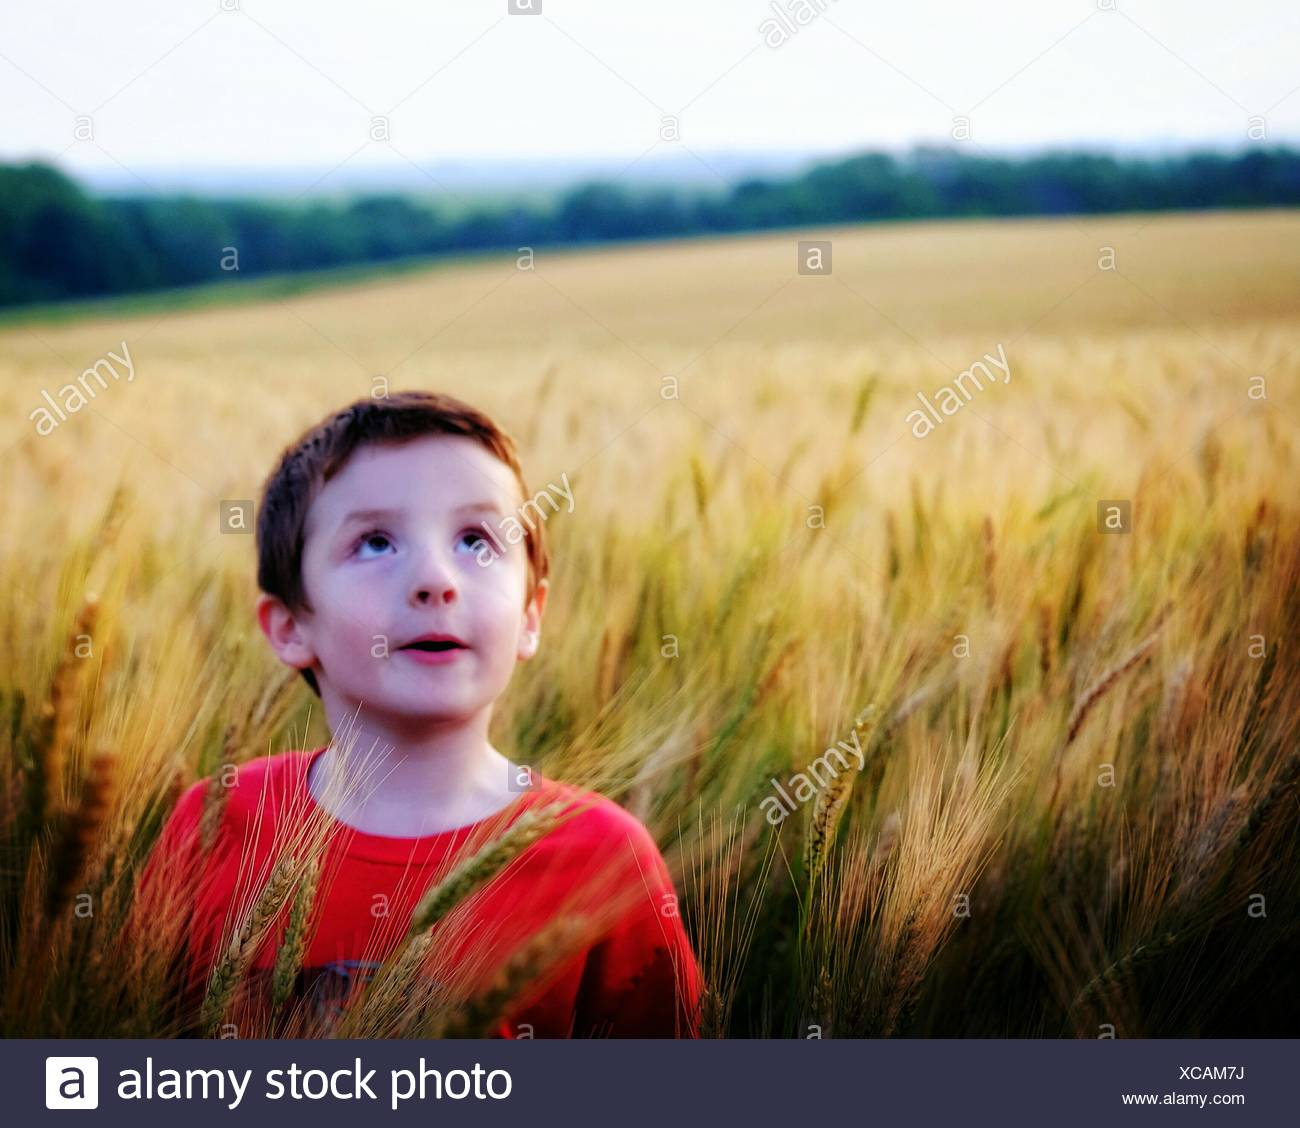 Boy Standing in Wheat Field et Looking up Photo Stock